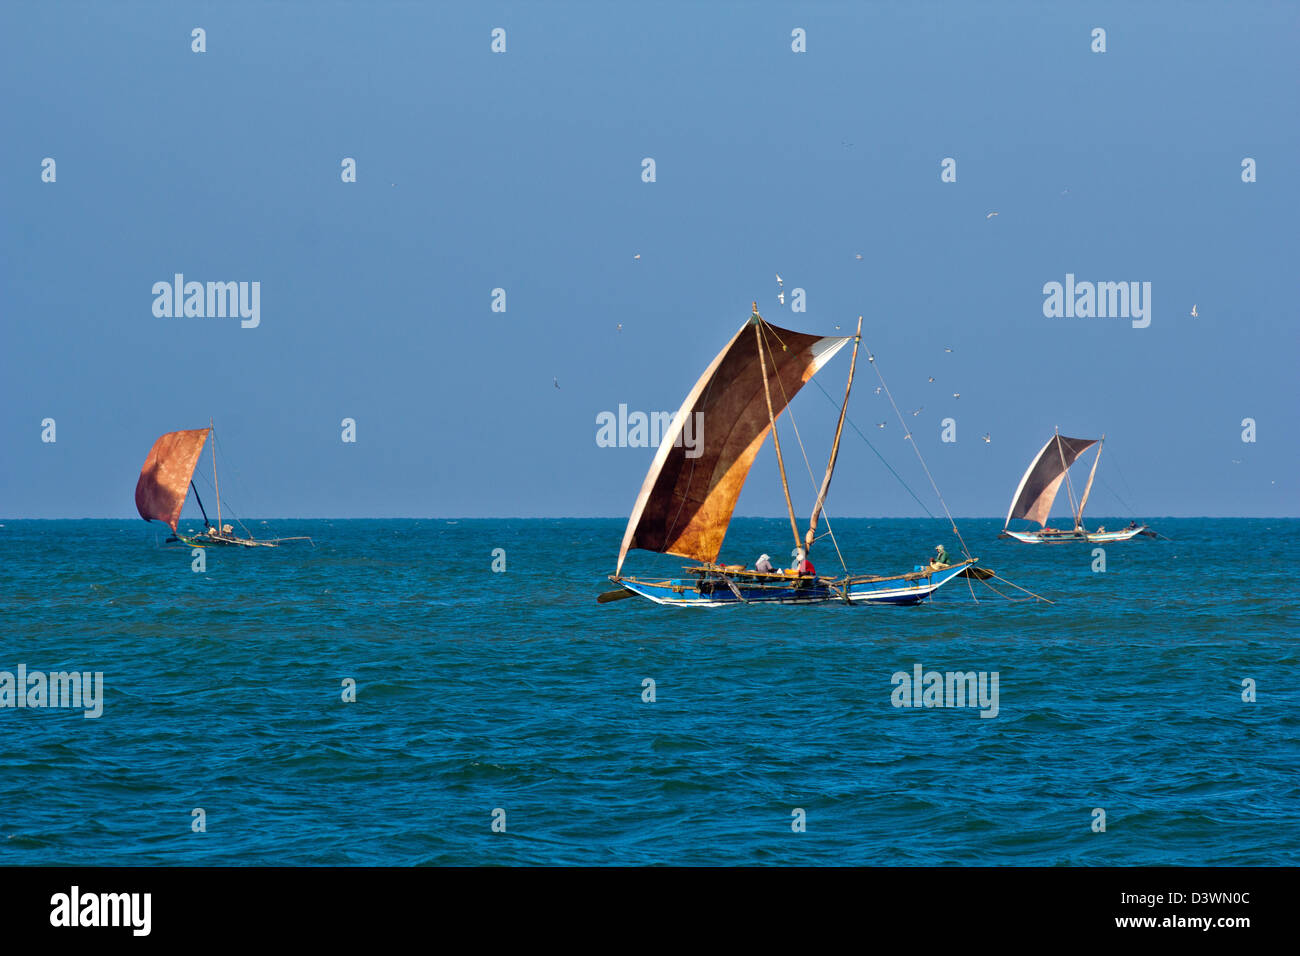 THREE CATAMARANS IN THE MORNING FISHING FOR PRAWNS IN THE INDIAN OCEAN NEAR TO THE BEACHES OF SRI LANKA Stock Photo